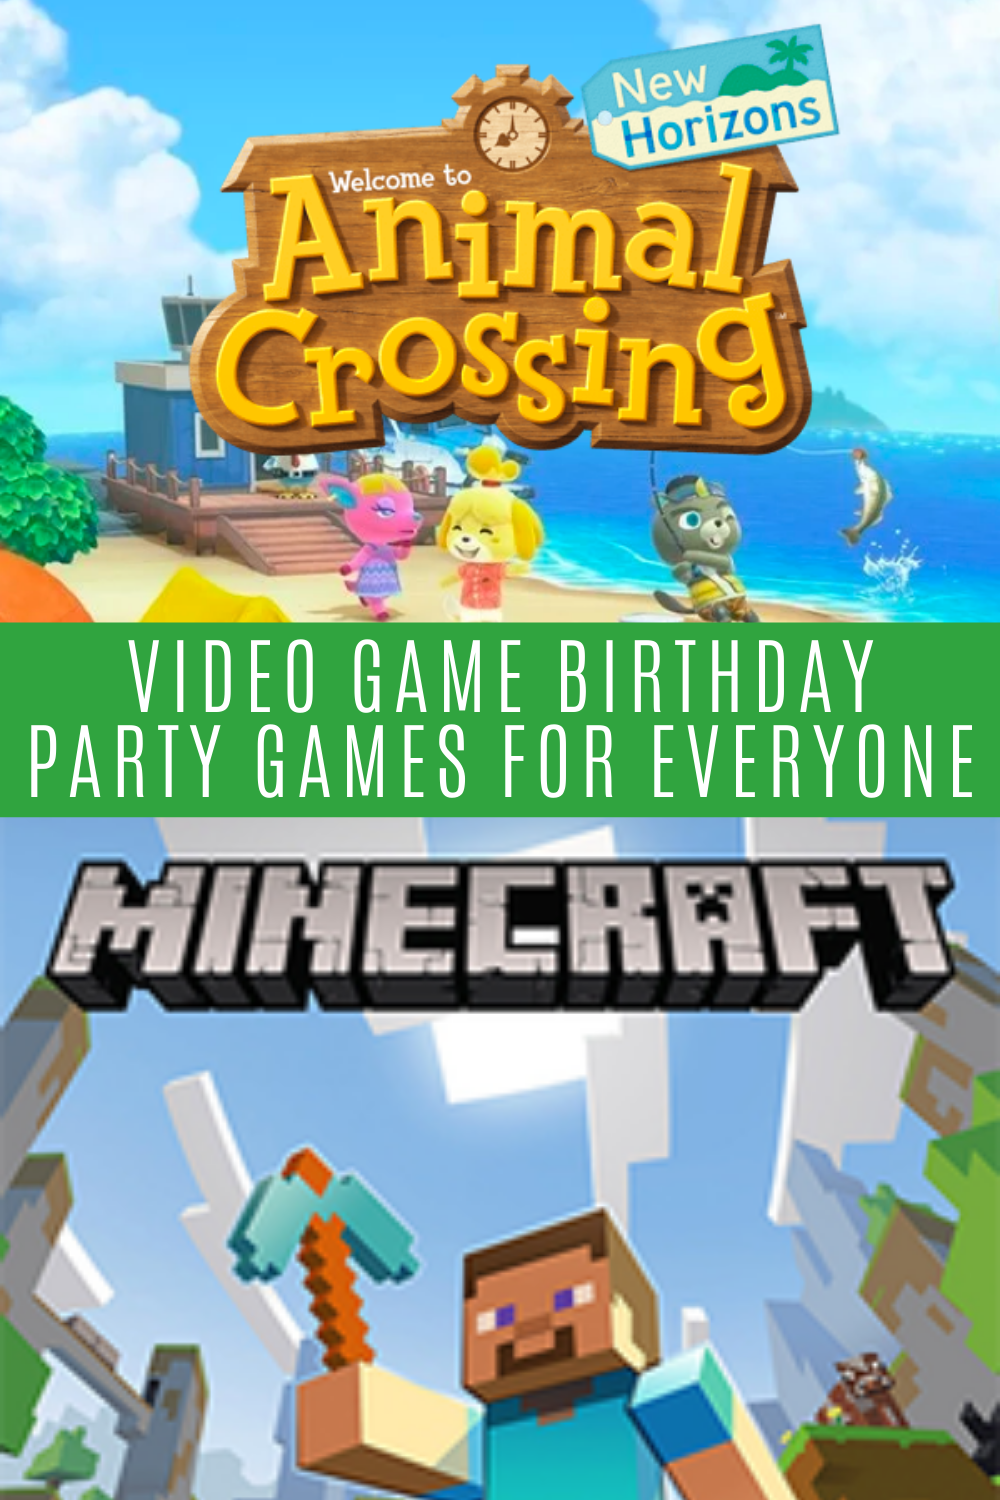 Video Game Birthday Party Games